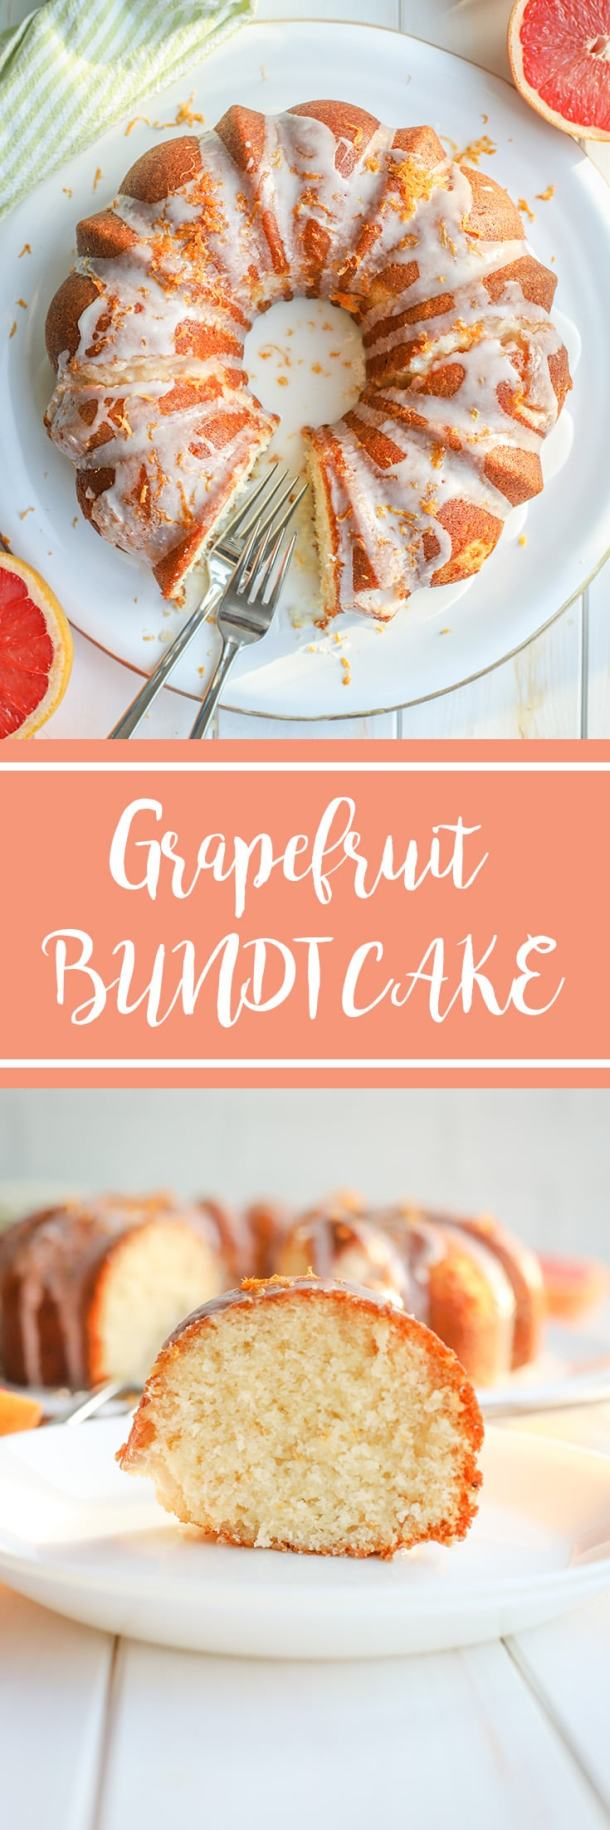 Bake this super moist glazed grapefruit bundt cake to make the most of citrus season! The perfect recipe for brunch, Mother's Day, or afternoon coffee cake. #grapefruitrecipes #citrusrecipes #bundtcake #mothersday